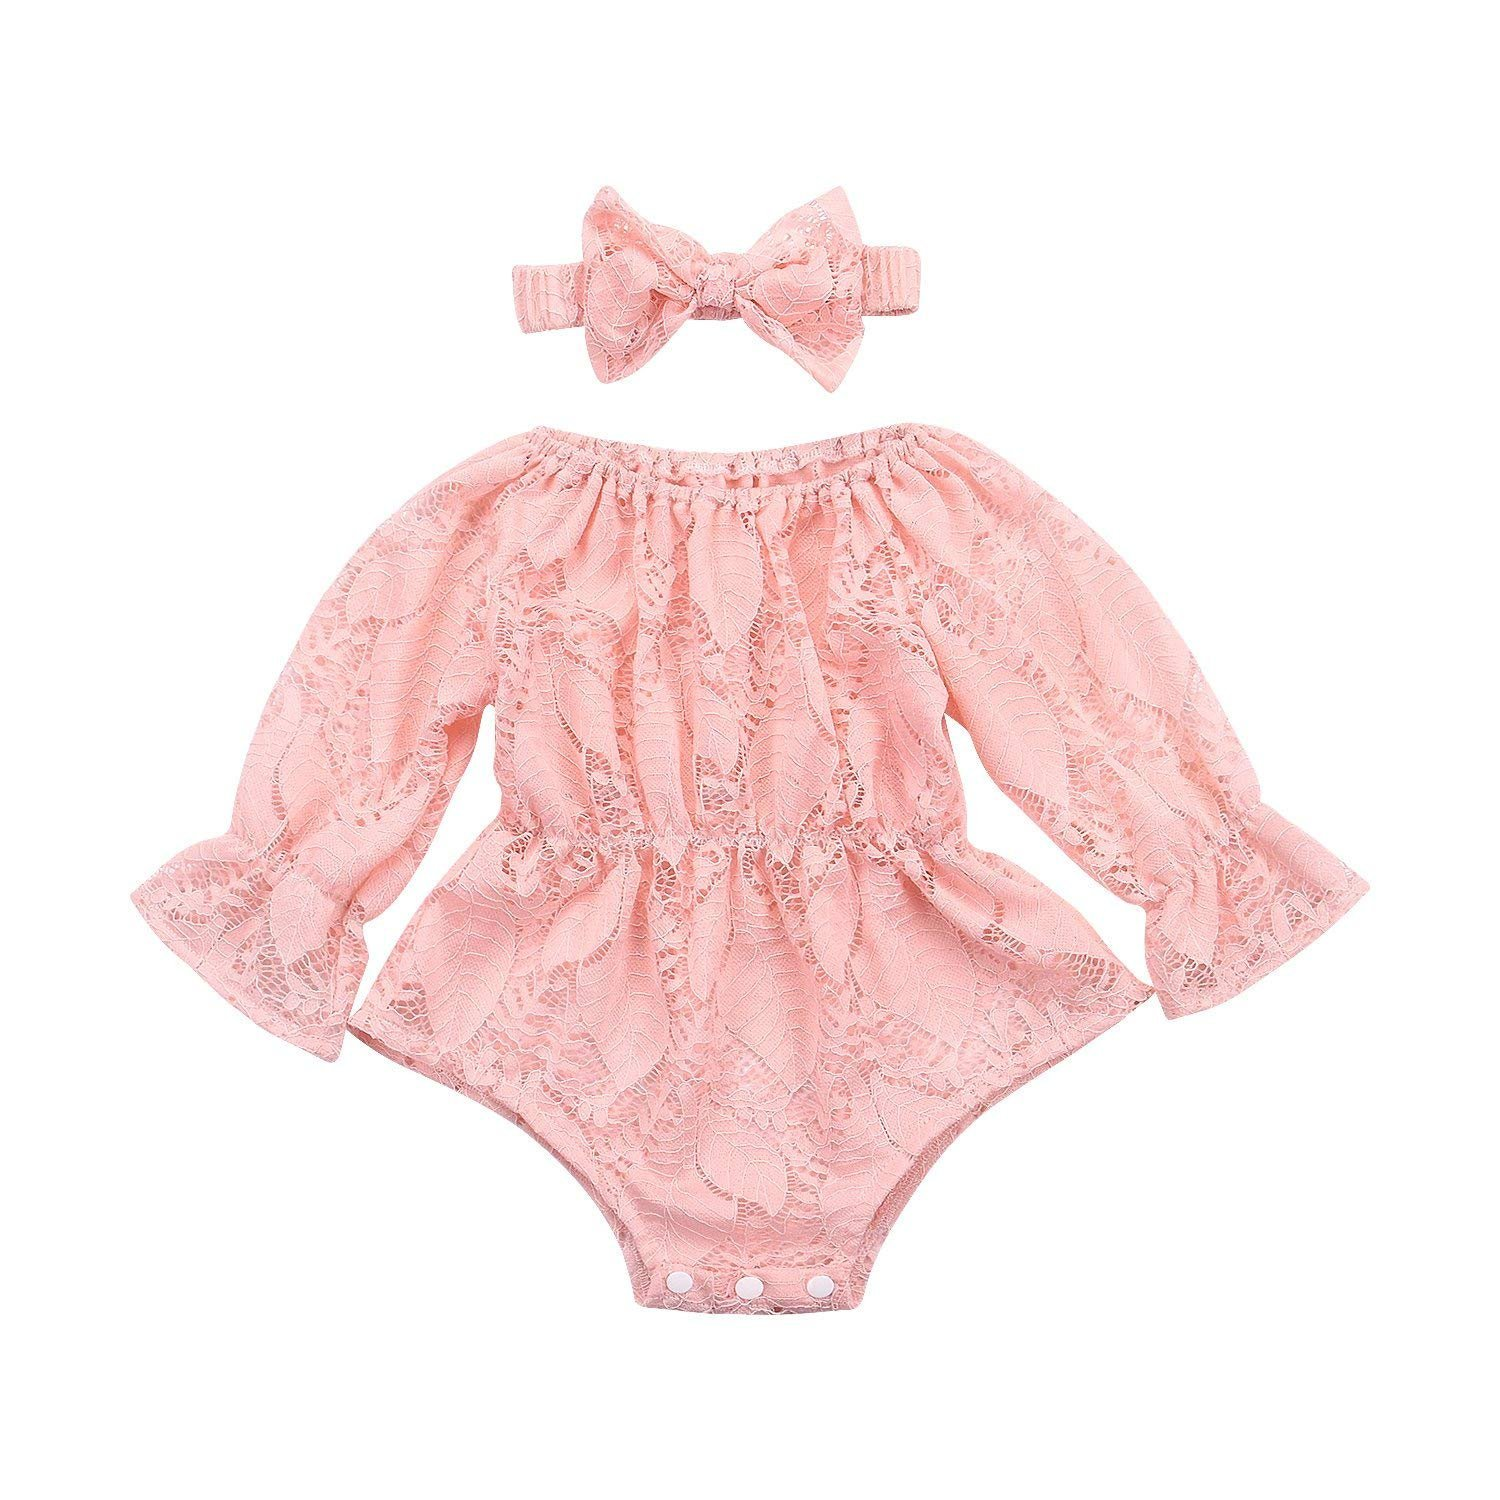 12-18months Swimsuit Superior Quality In